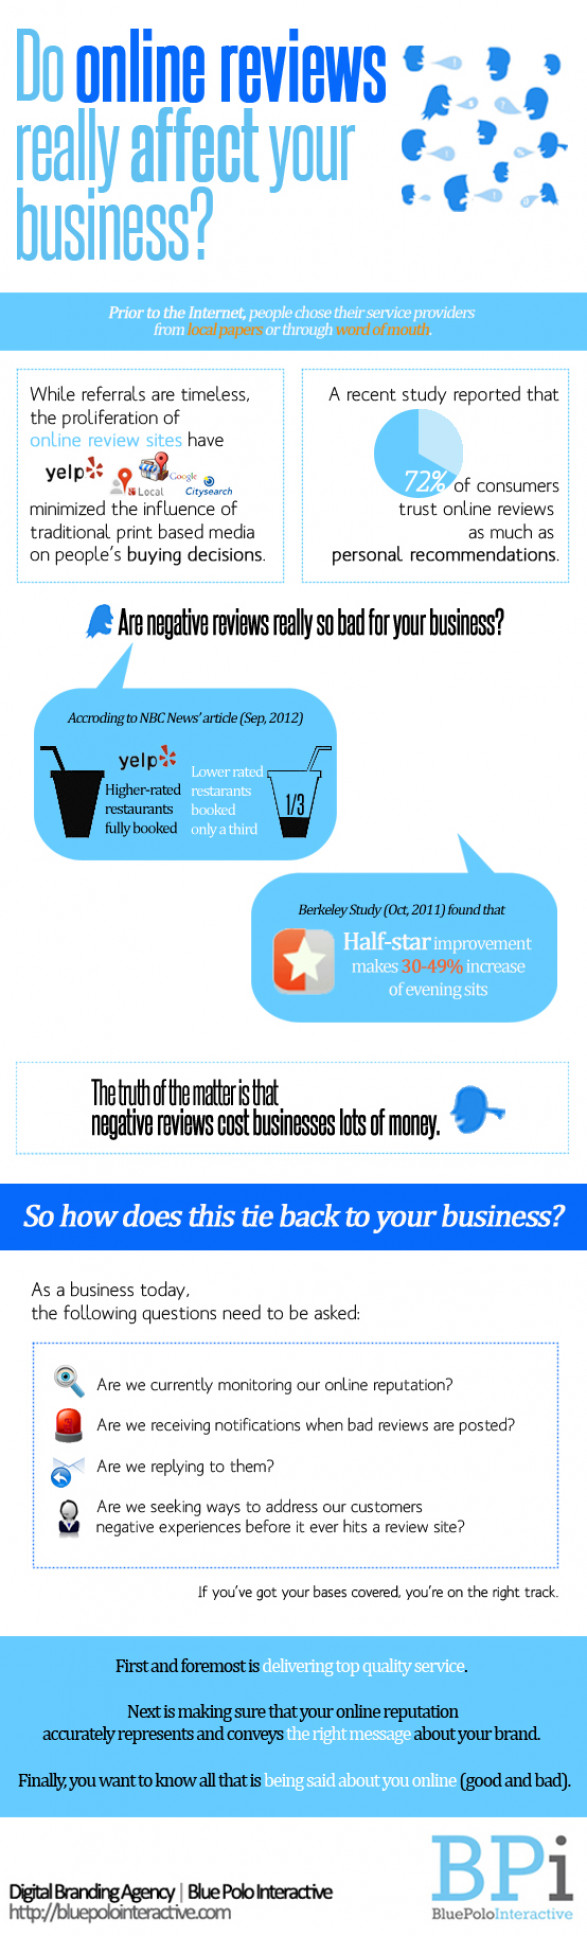 Do online reviews really affect your business?